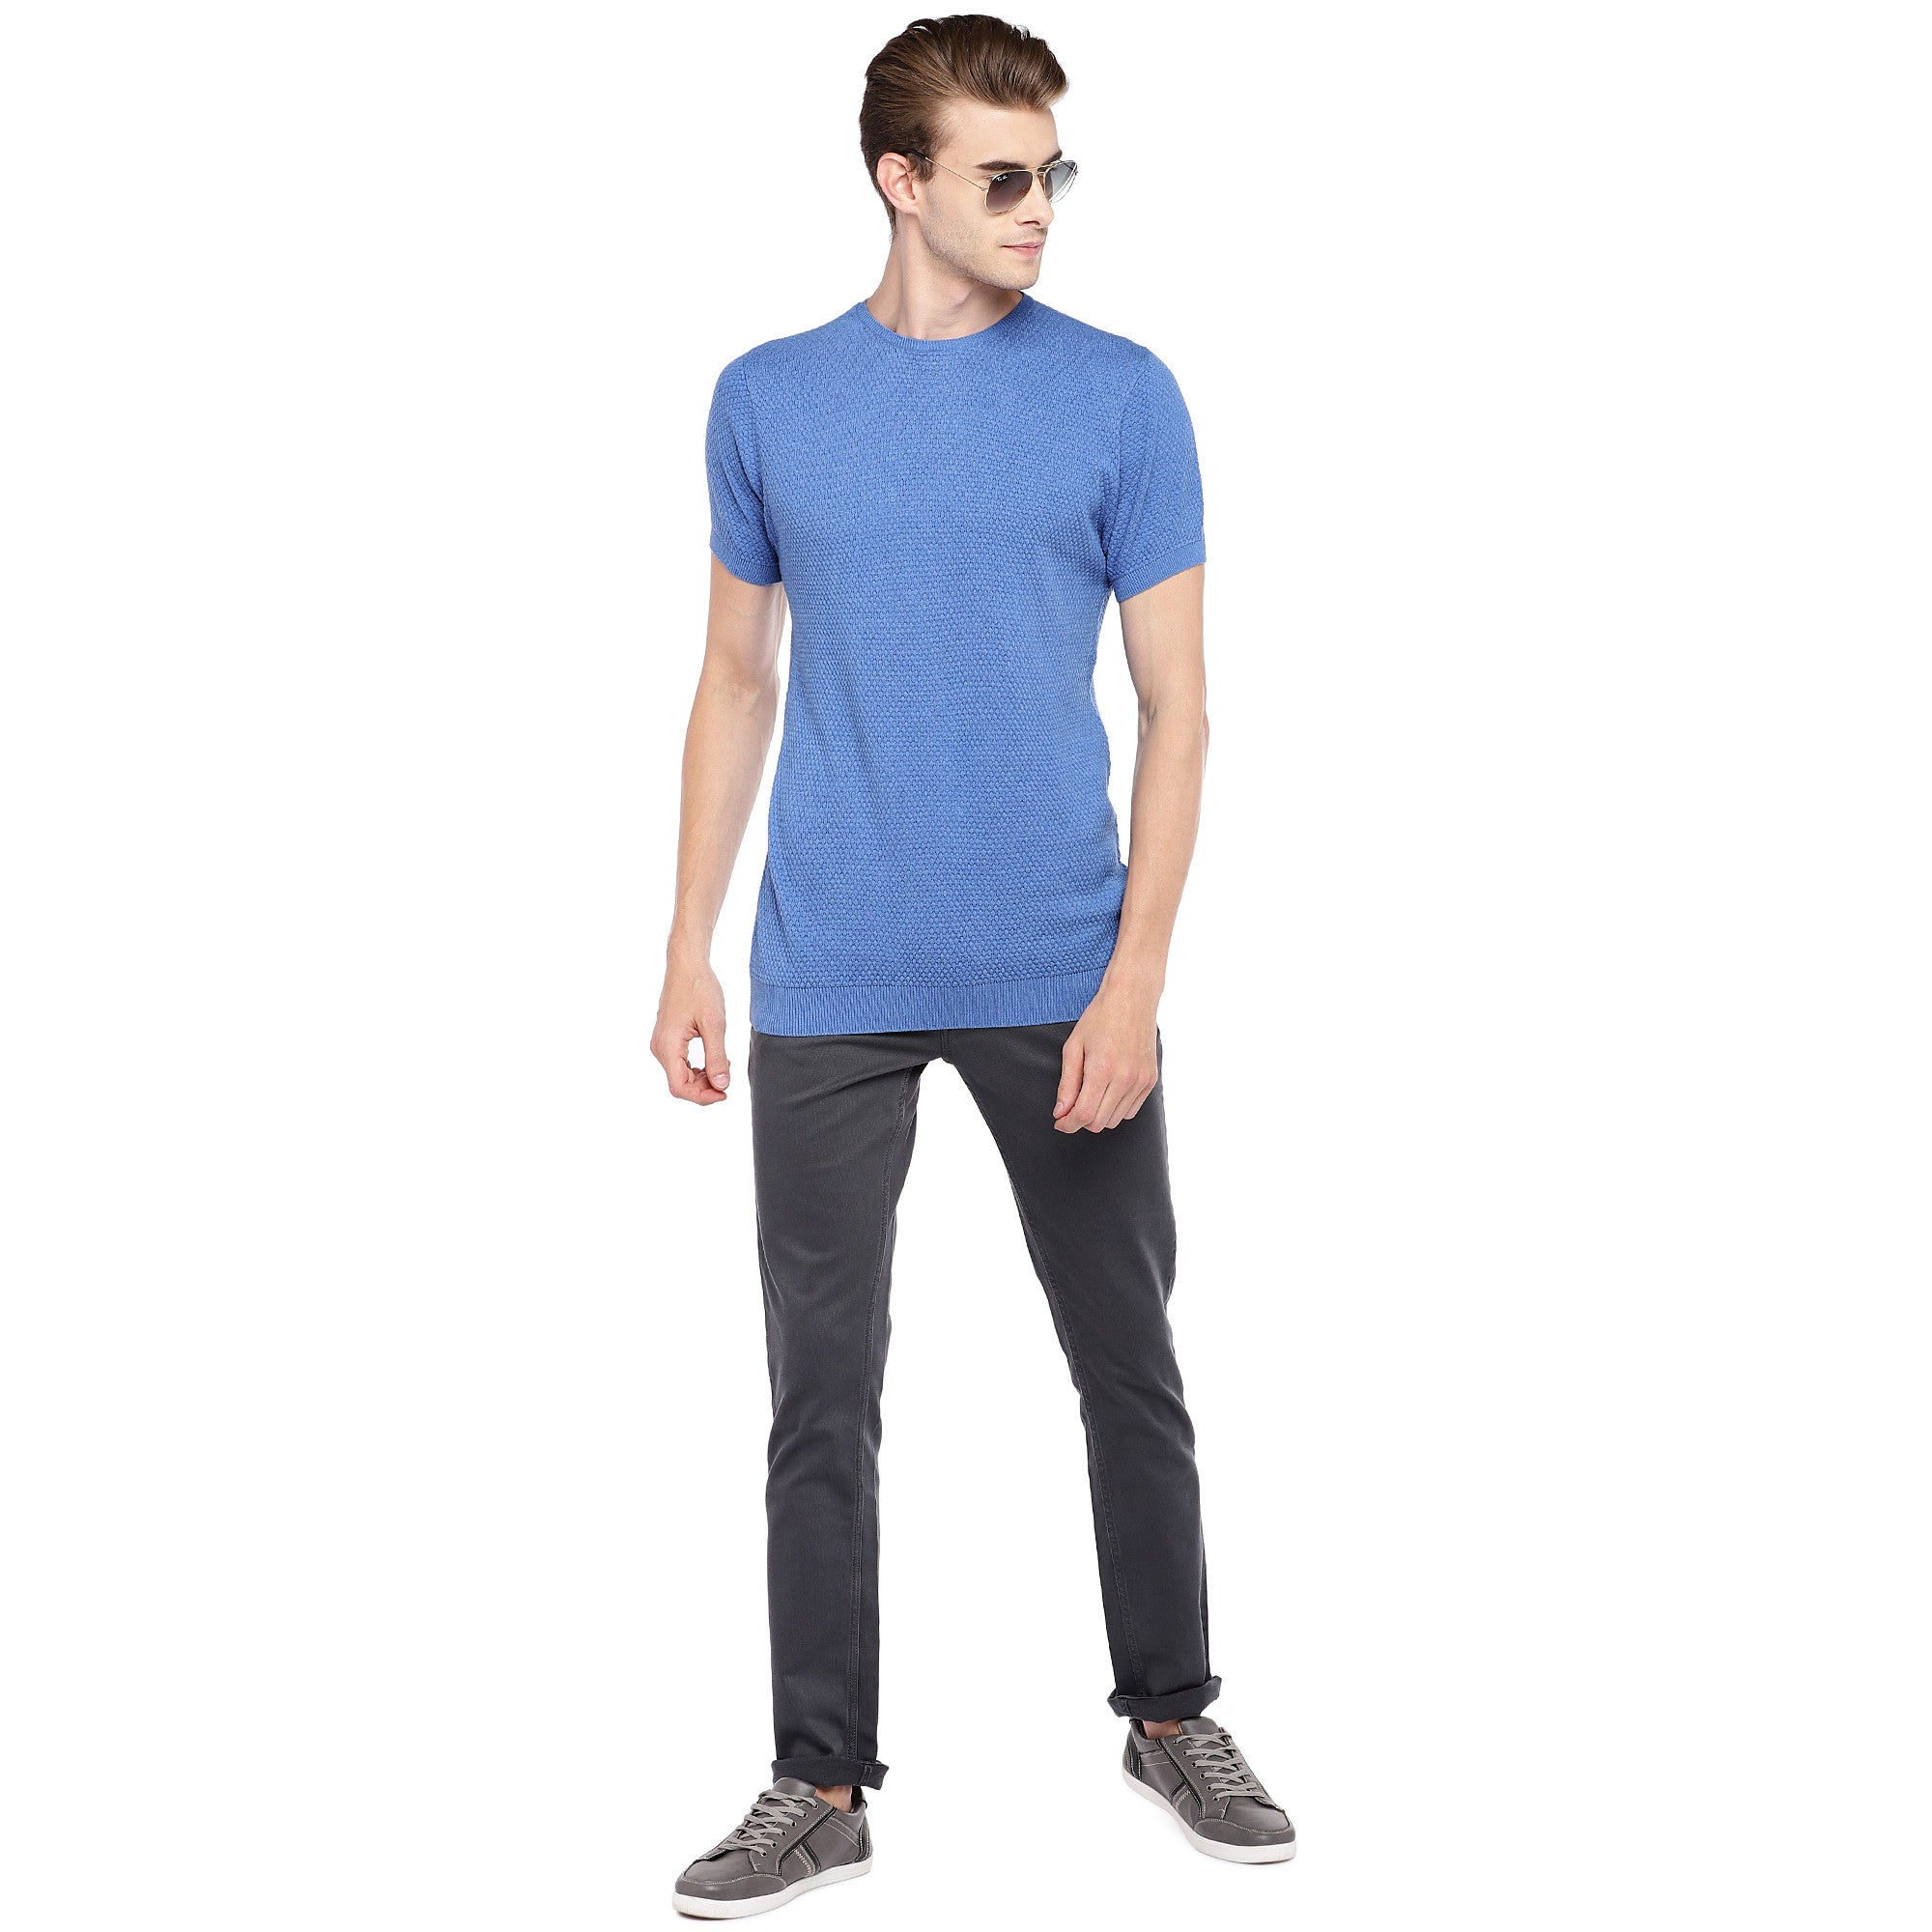 Blue Self Design Round Neck T-shirt-4